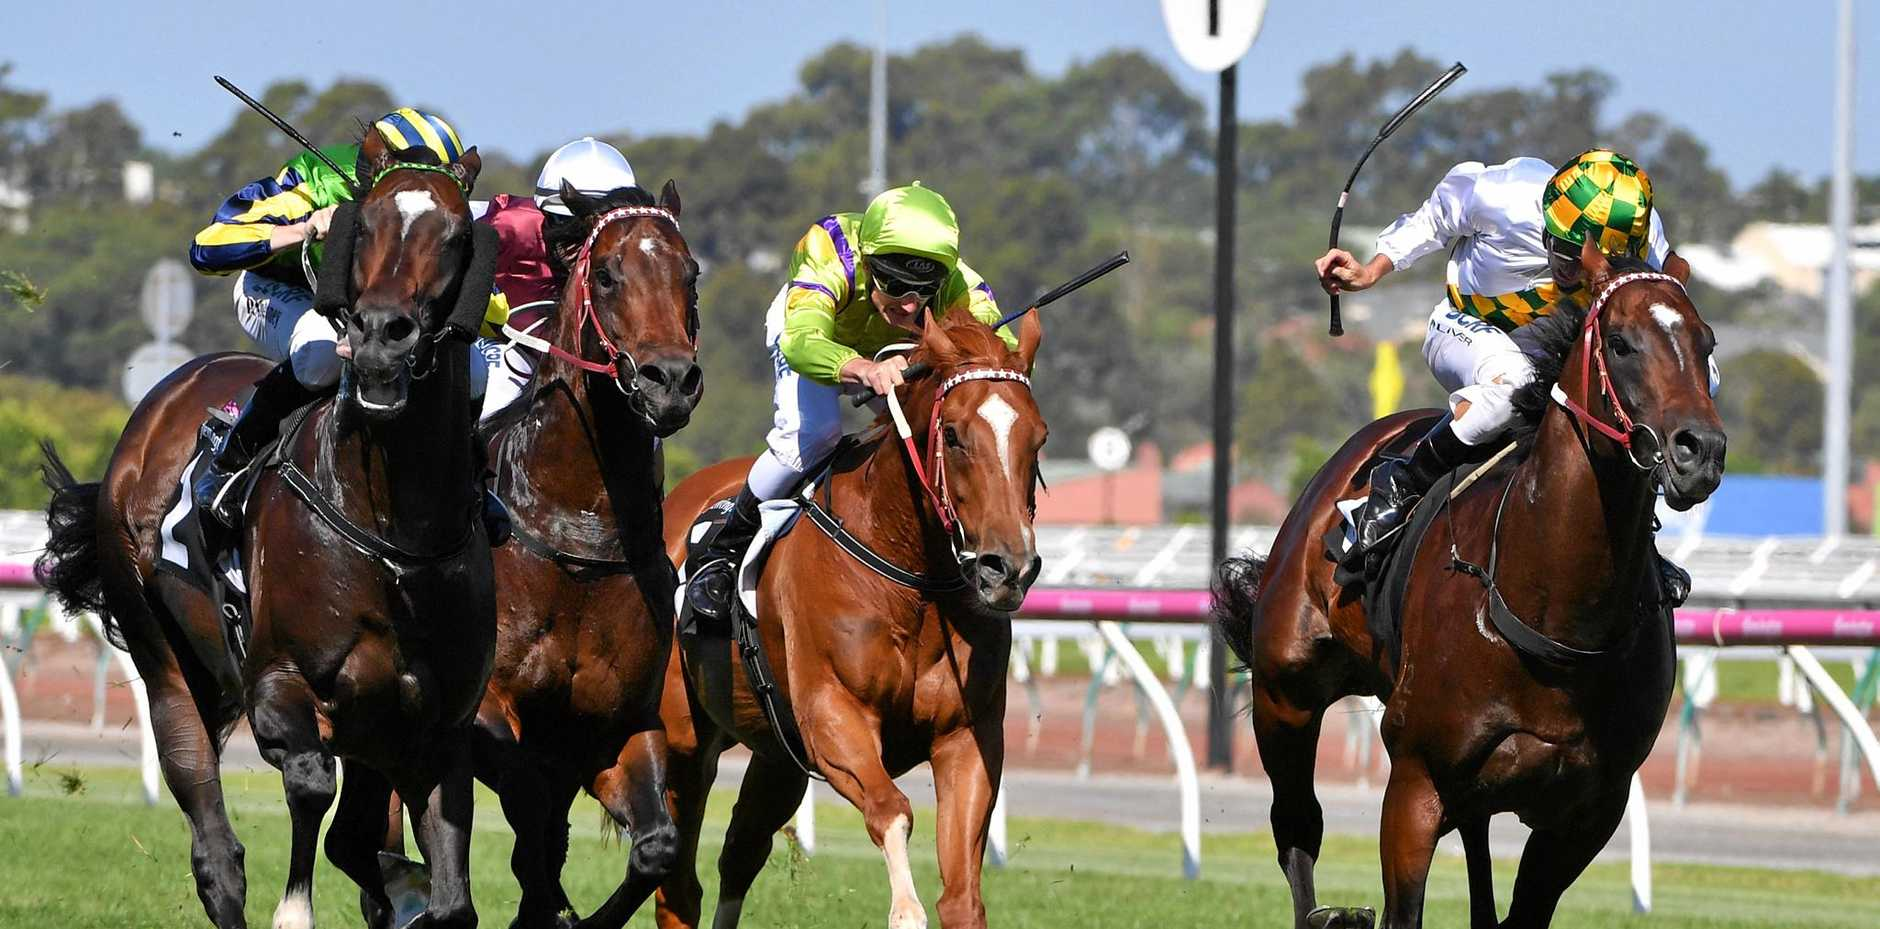 Patrick Moloney guides Tivaci (left) to a win over the Damien Oliver-ridden El Divino (right) in the Kensington Stakes.